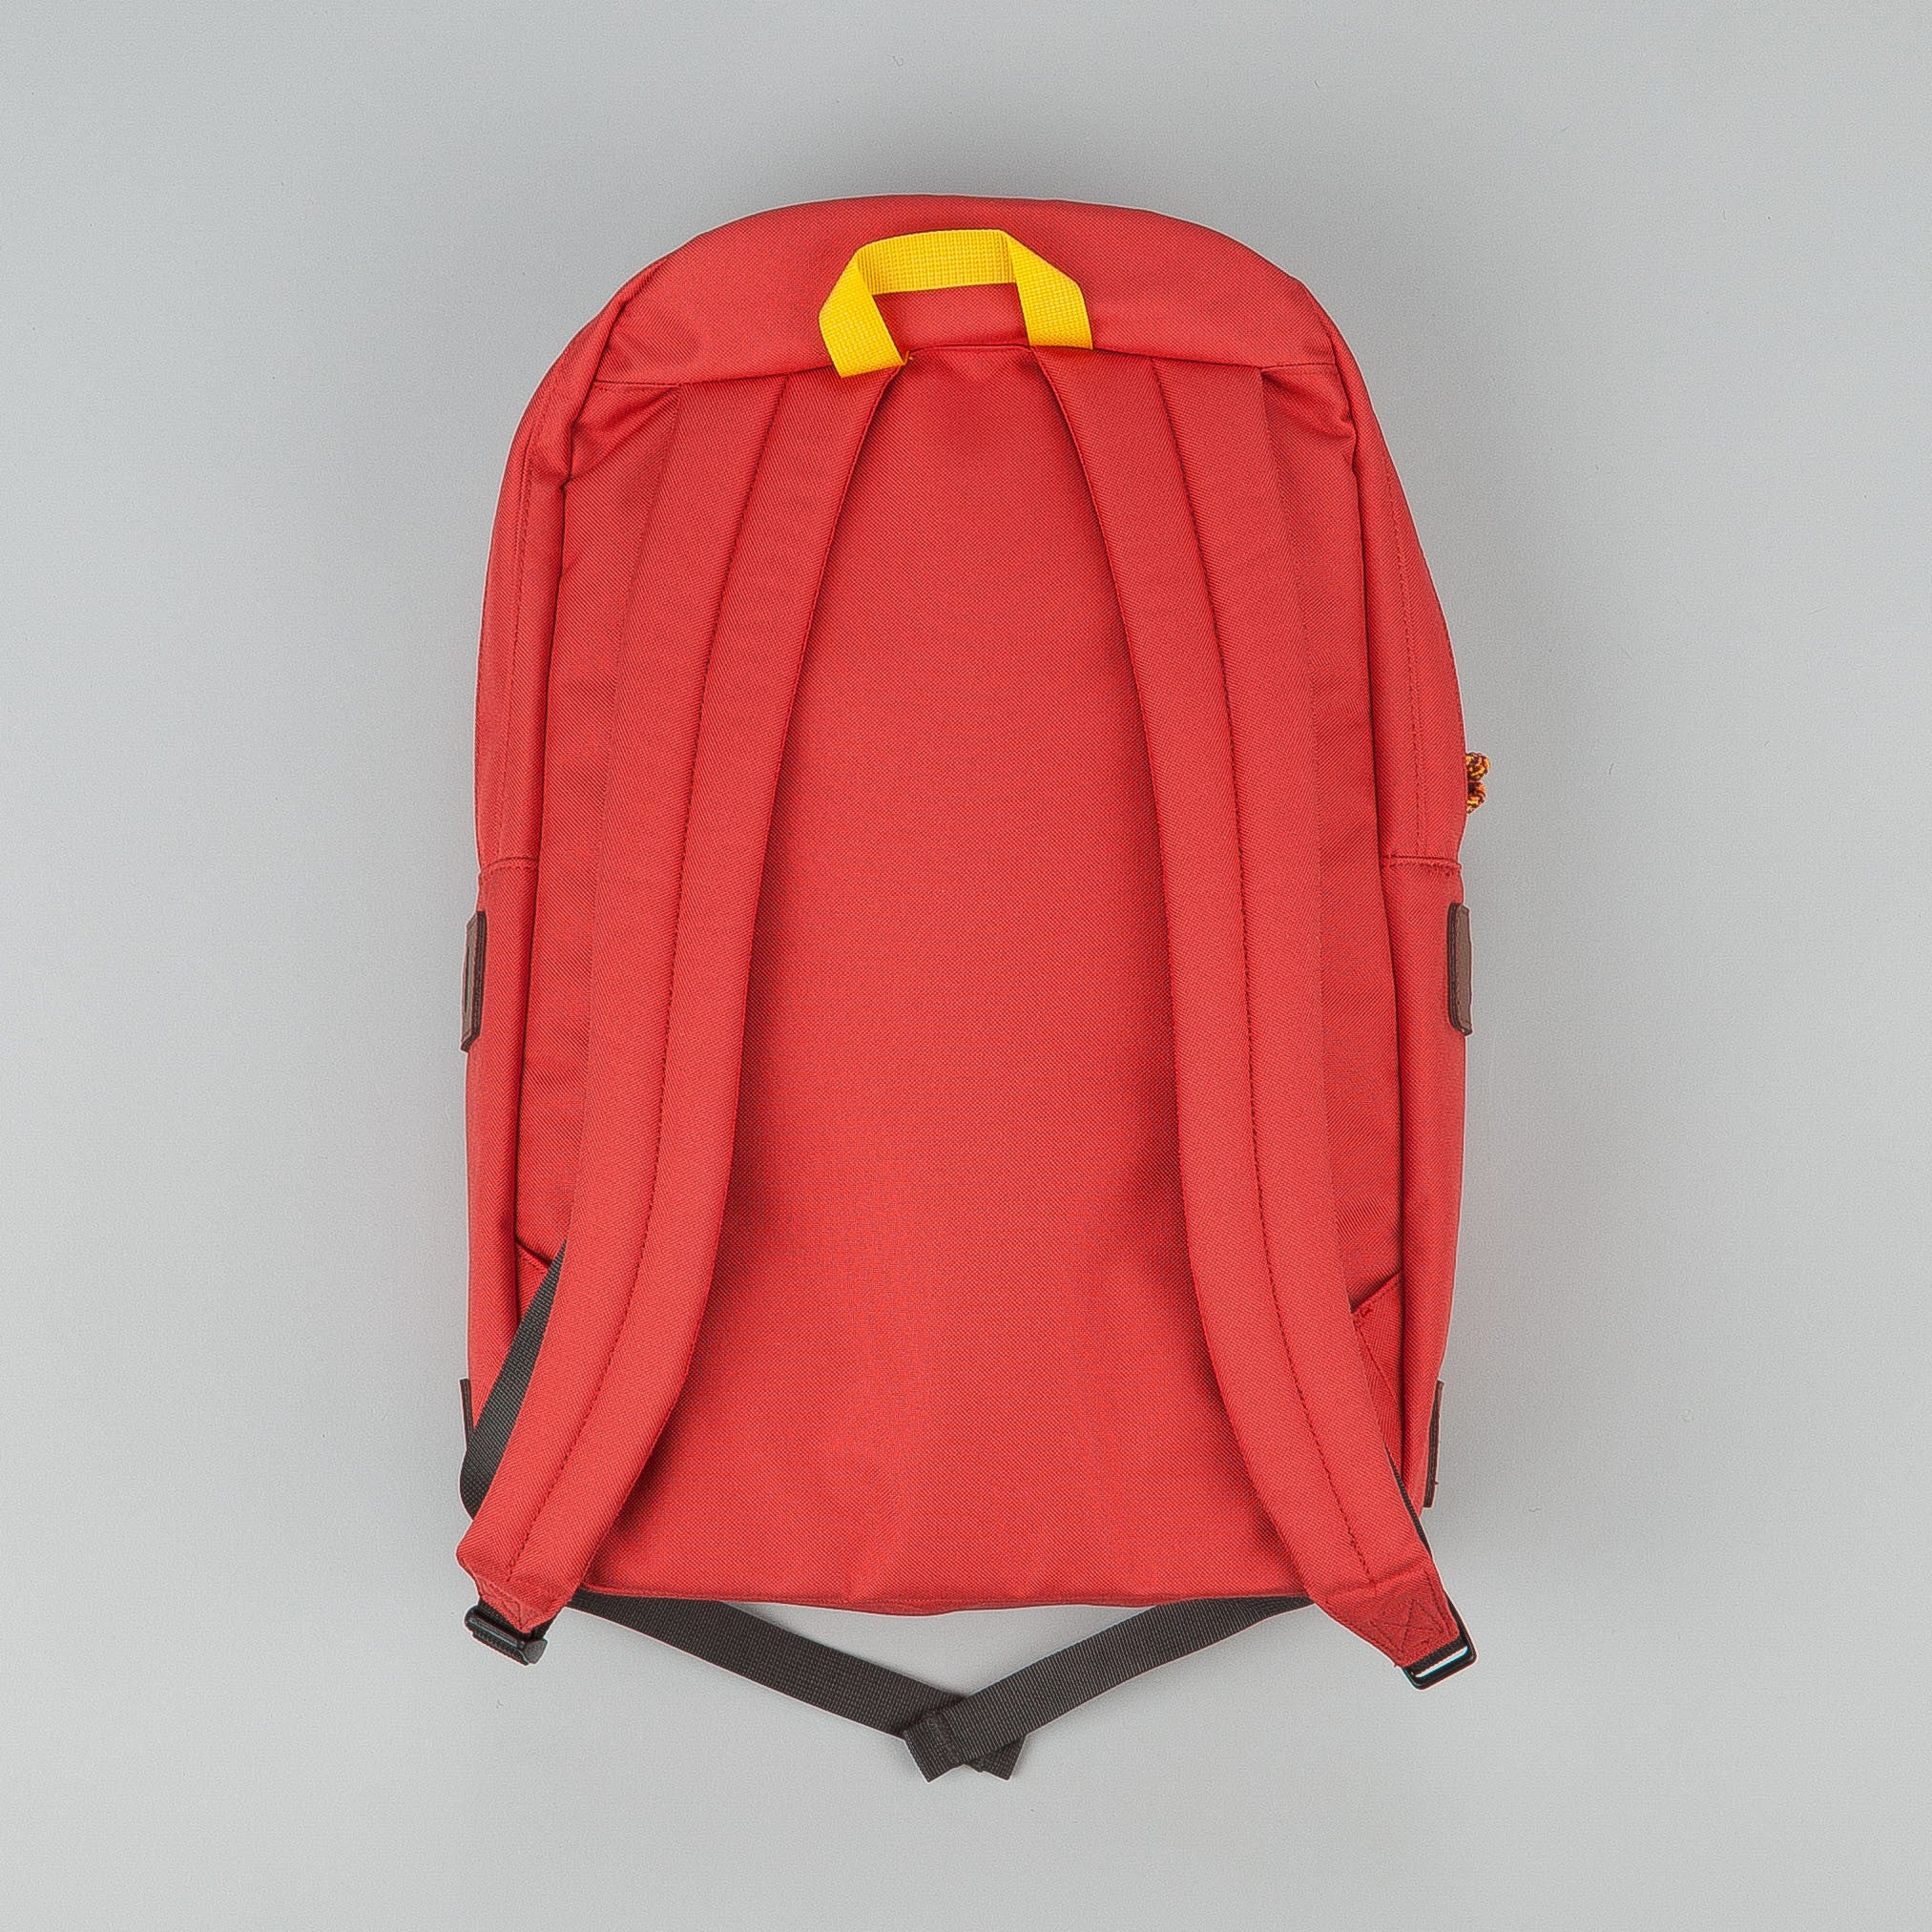 Patagonia Ironwood Backpack - Sumac Red